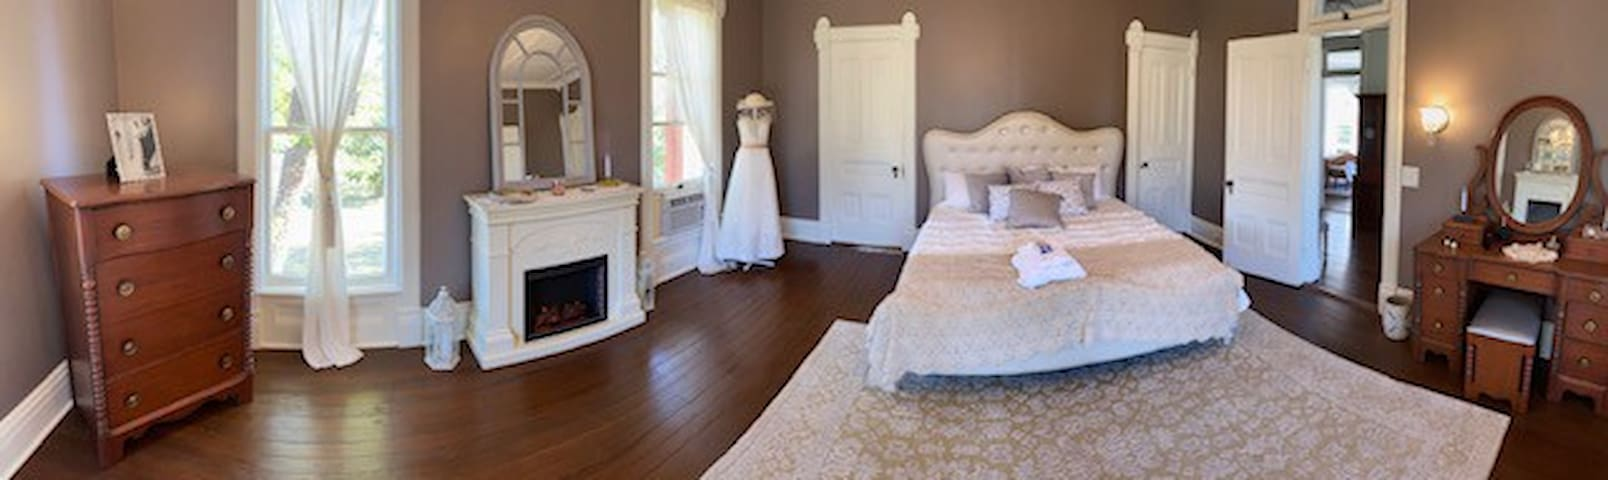 Prescott-Foley Victoria, bridal suite